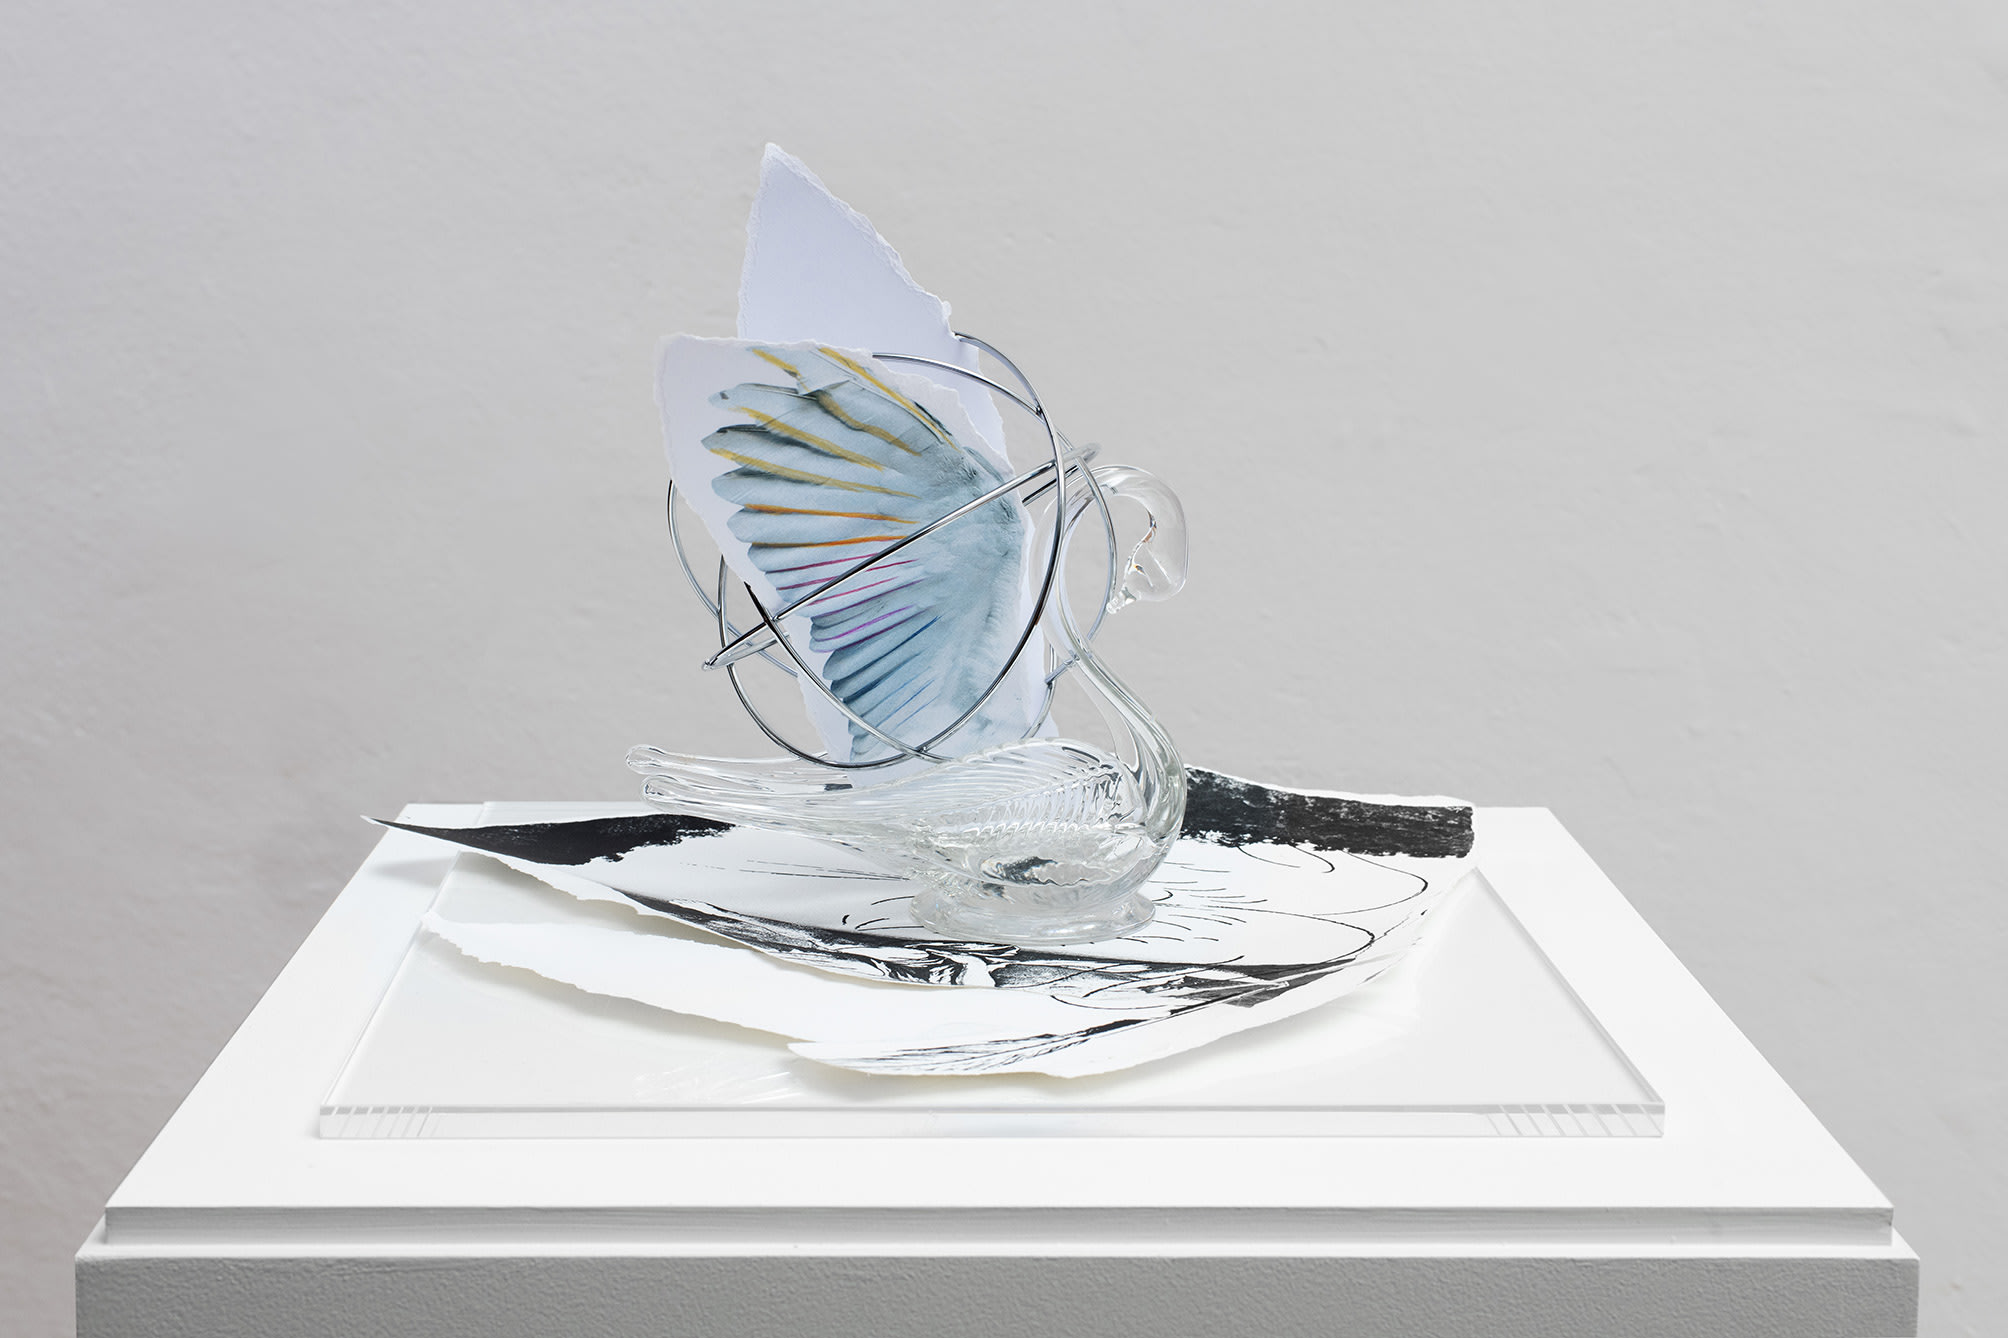 a glass swan with paper wings sits on a drawing; work by Giulio Paolini